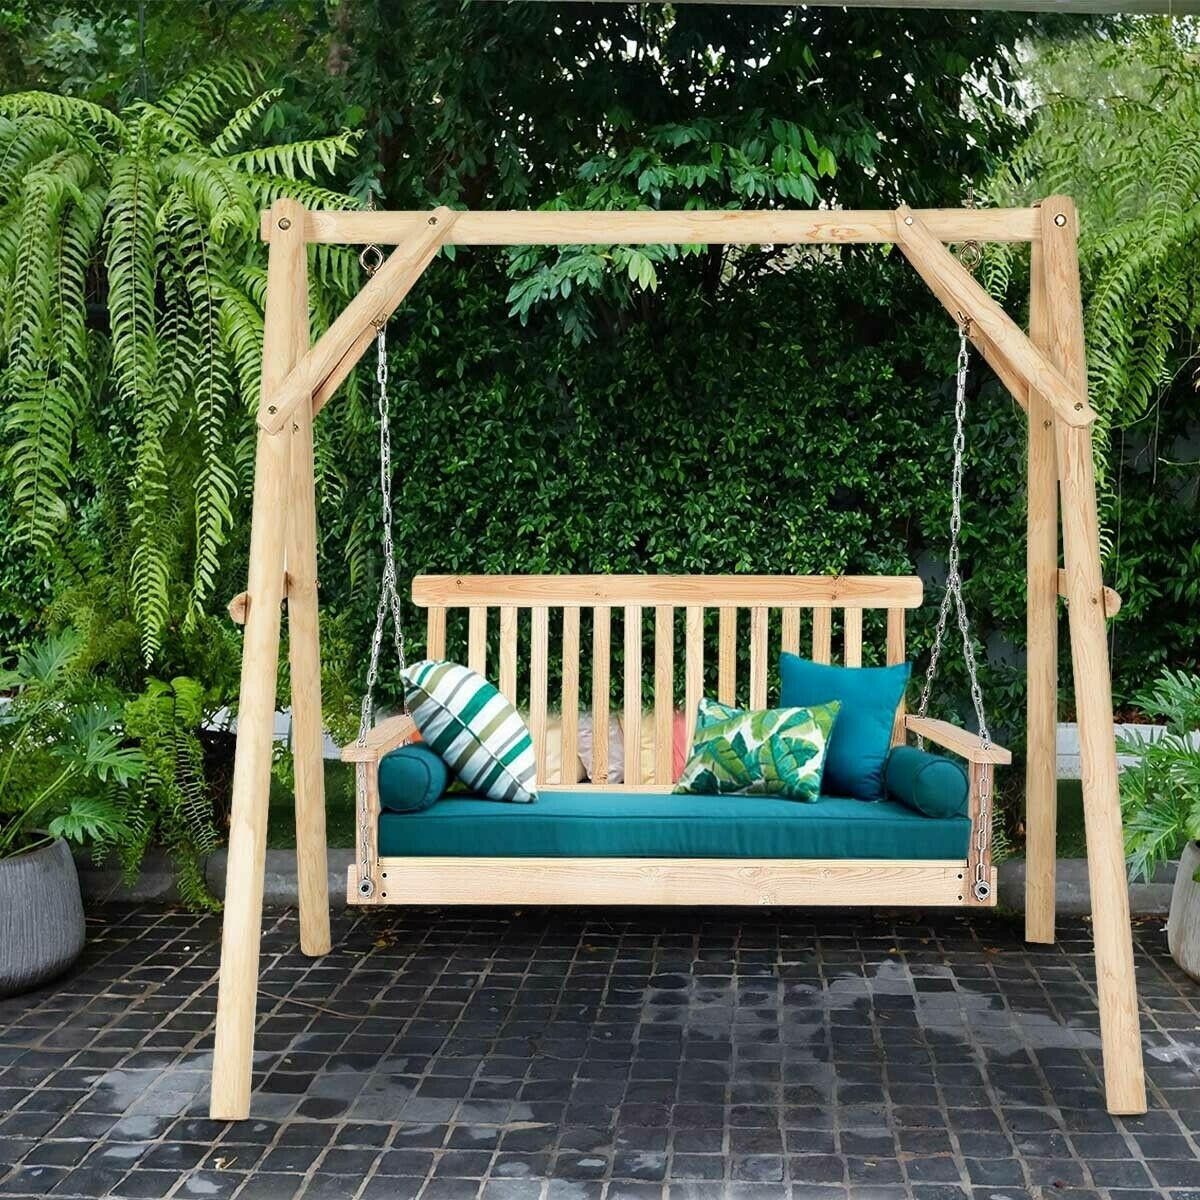 Details About 4 Porch Swing Patio Outdoor Hanging Seat Garden Chains Bench Wooden Furniture